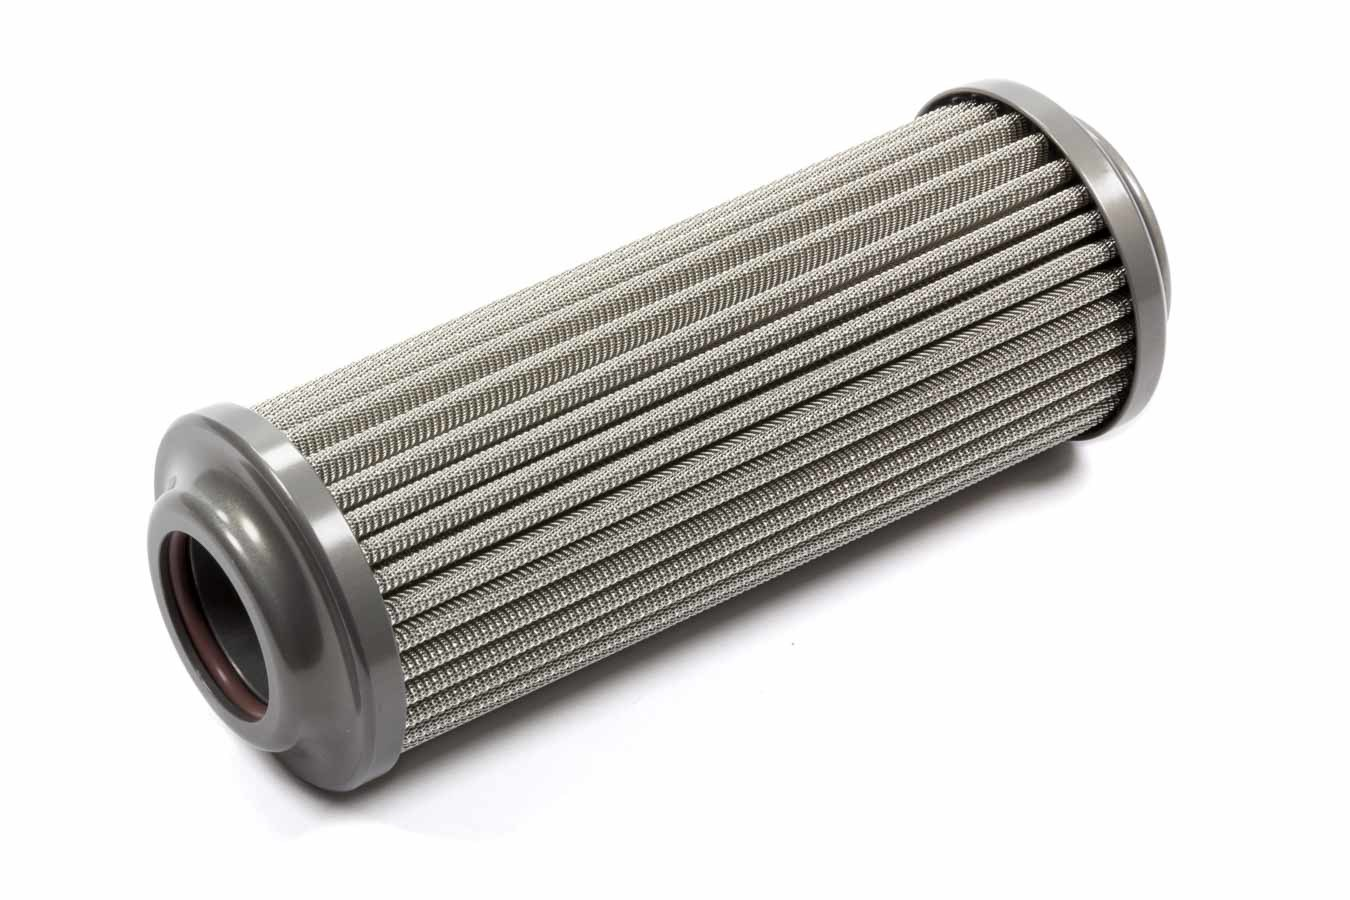 XRP 713100HP Fuel Filter Element, High Pressure, 100 Micron, Stainless Element, XRP 8 AN to 16 AN Short In-Line Filter, Each